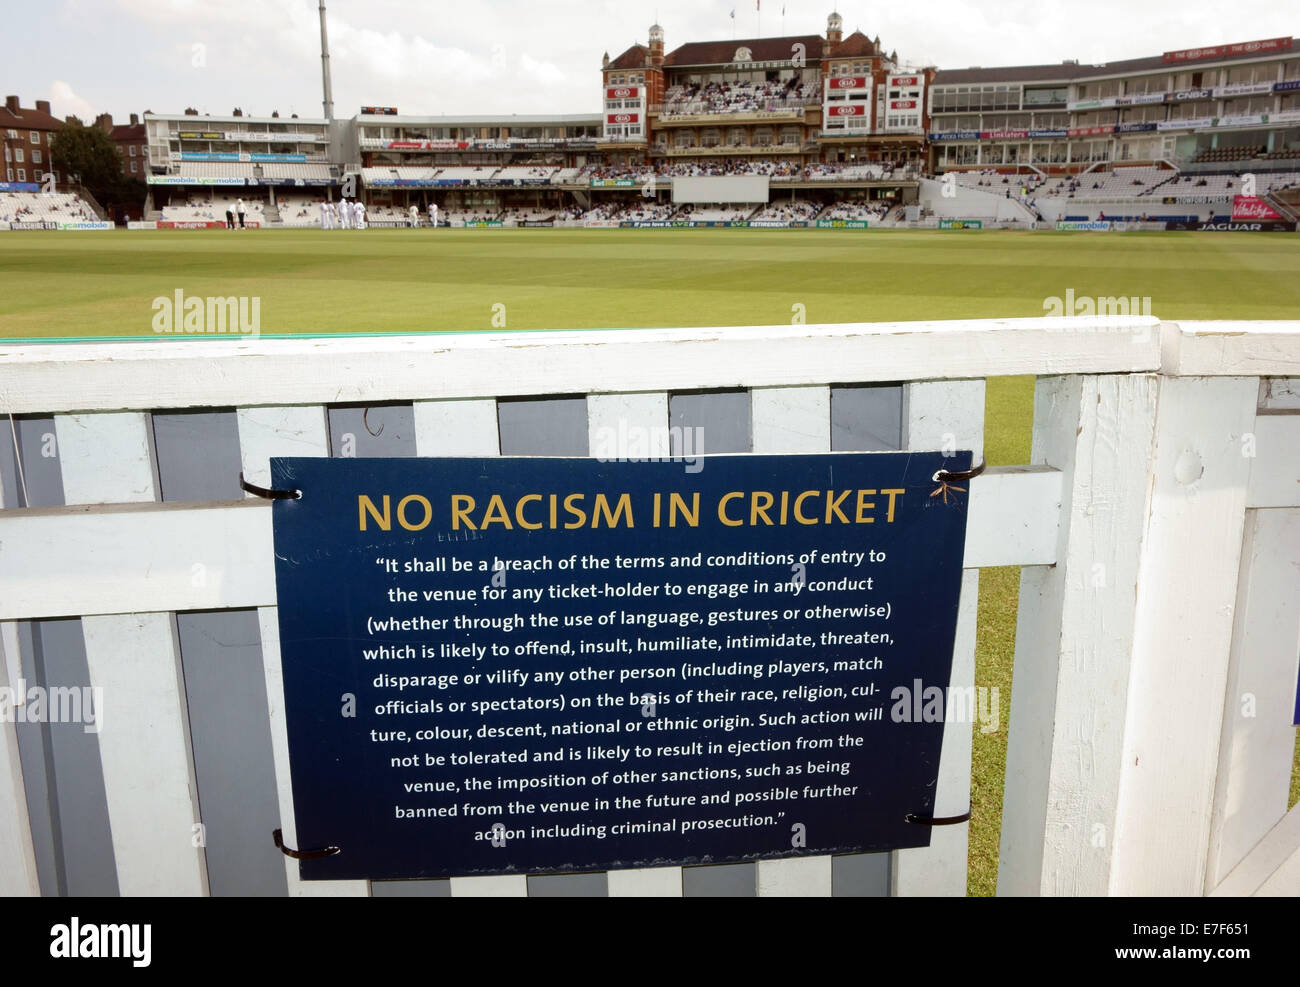 Notice about racism in cricket at The Oval cricket ground, London - Stock Image